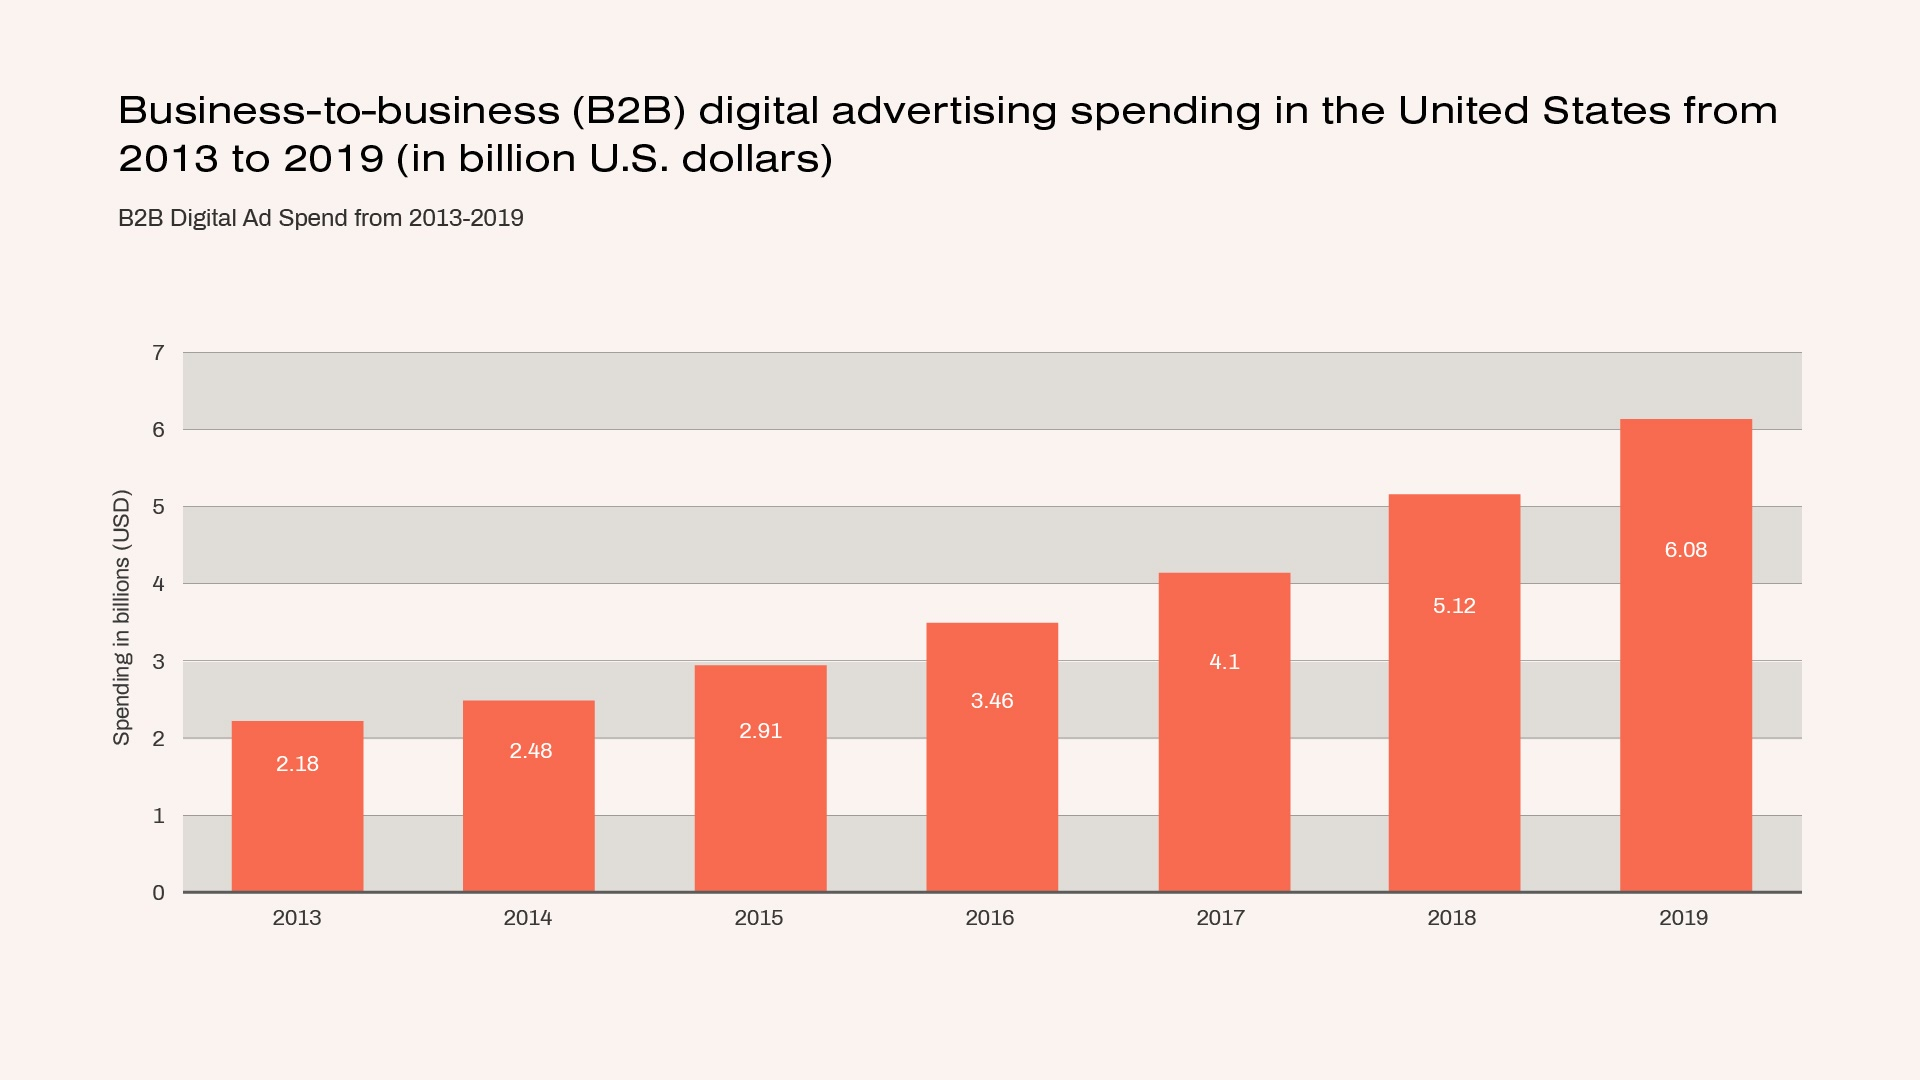 B2B Digital advertising spending in the US from 2013 to 2019